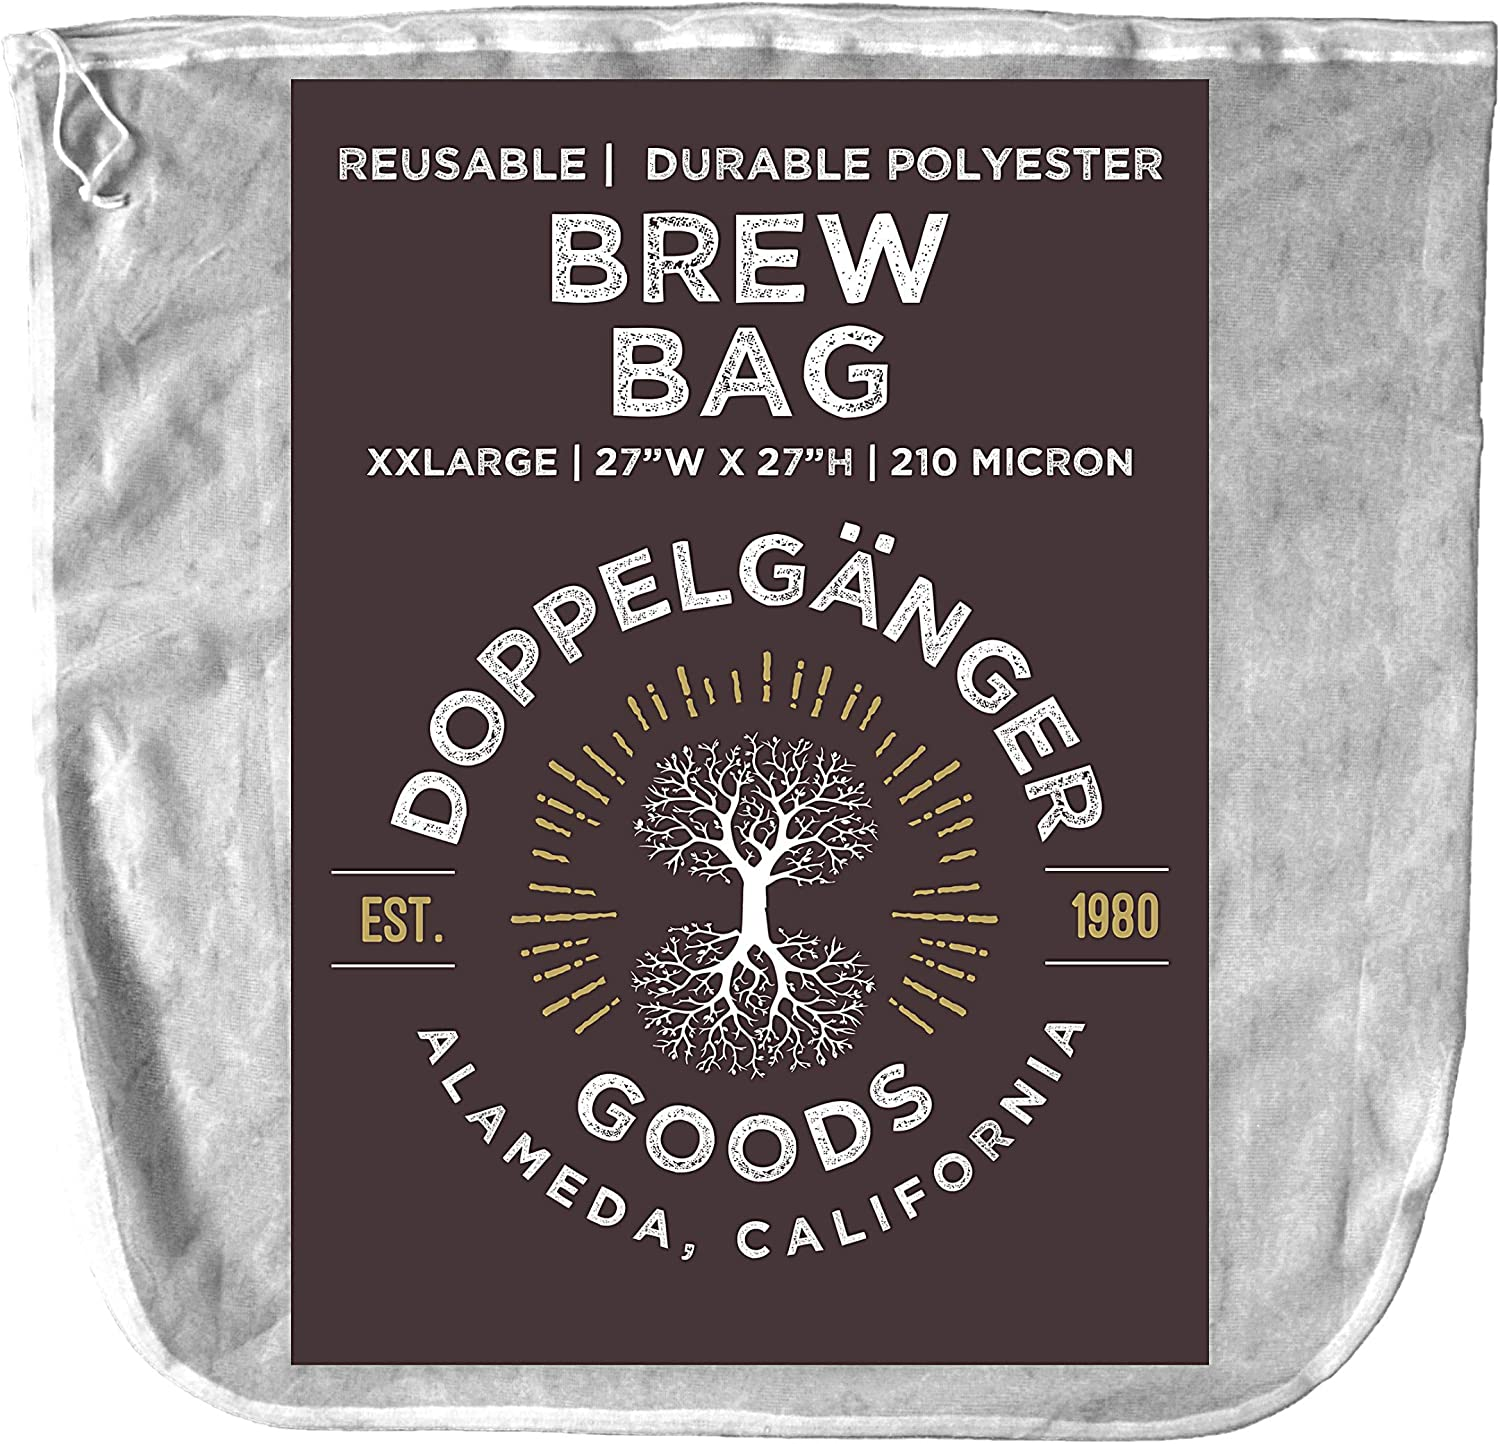 (XXL 27in x 27in) Durable Polyester Beer Brewing Brew Bag - Designed in California - Reusable Home Brewing Strainer Bag with EasyOpen Drawstring to Filter Mash, Boil and Strain Hops, Apple Cider